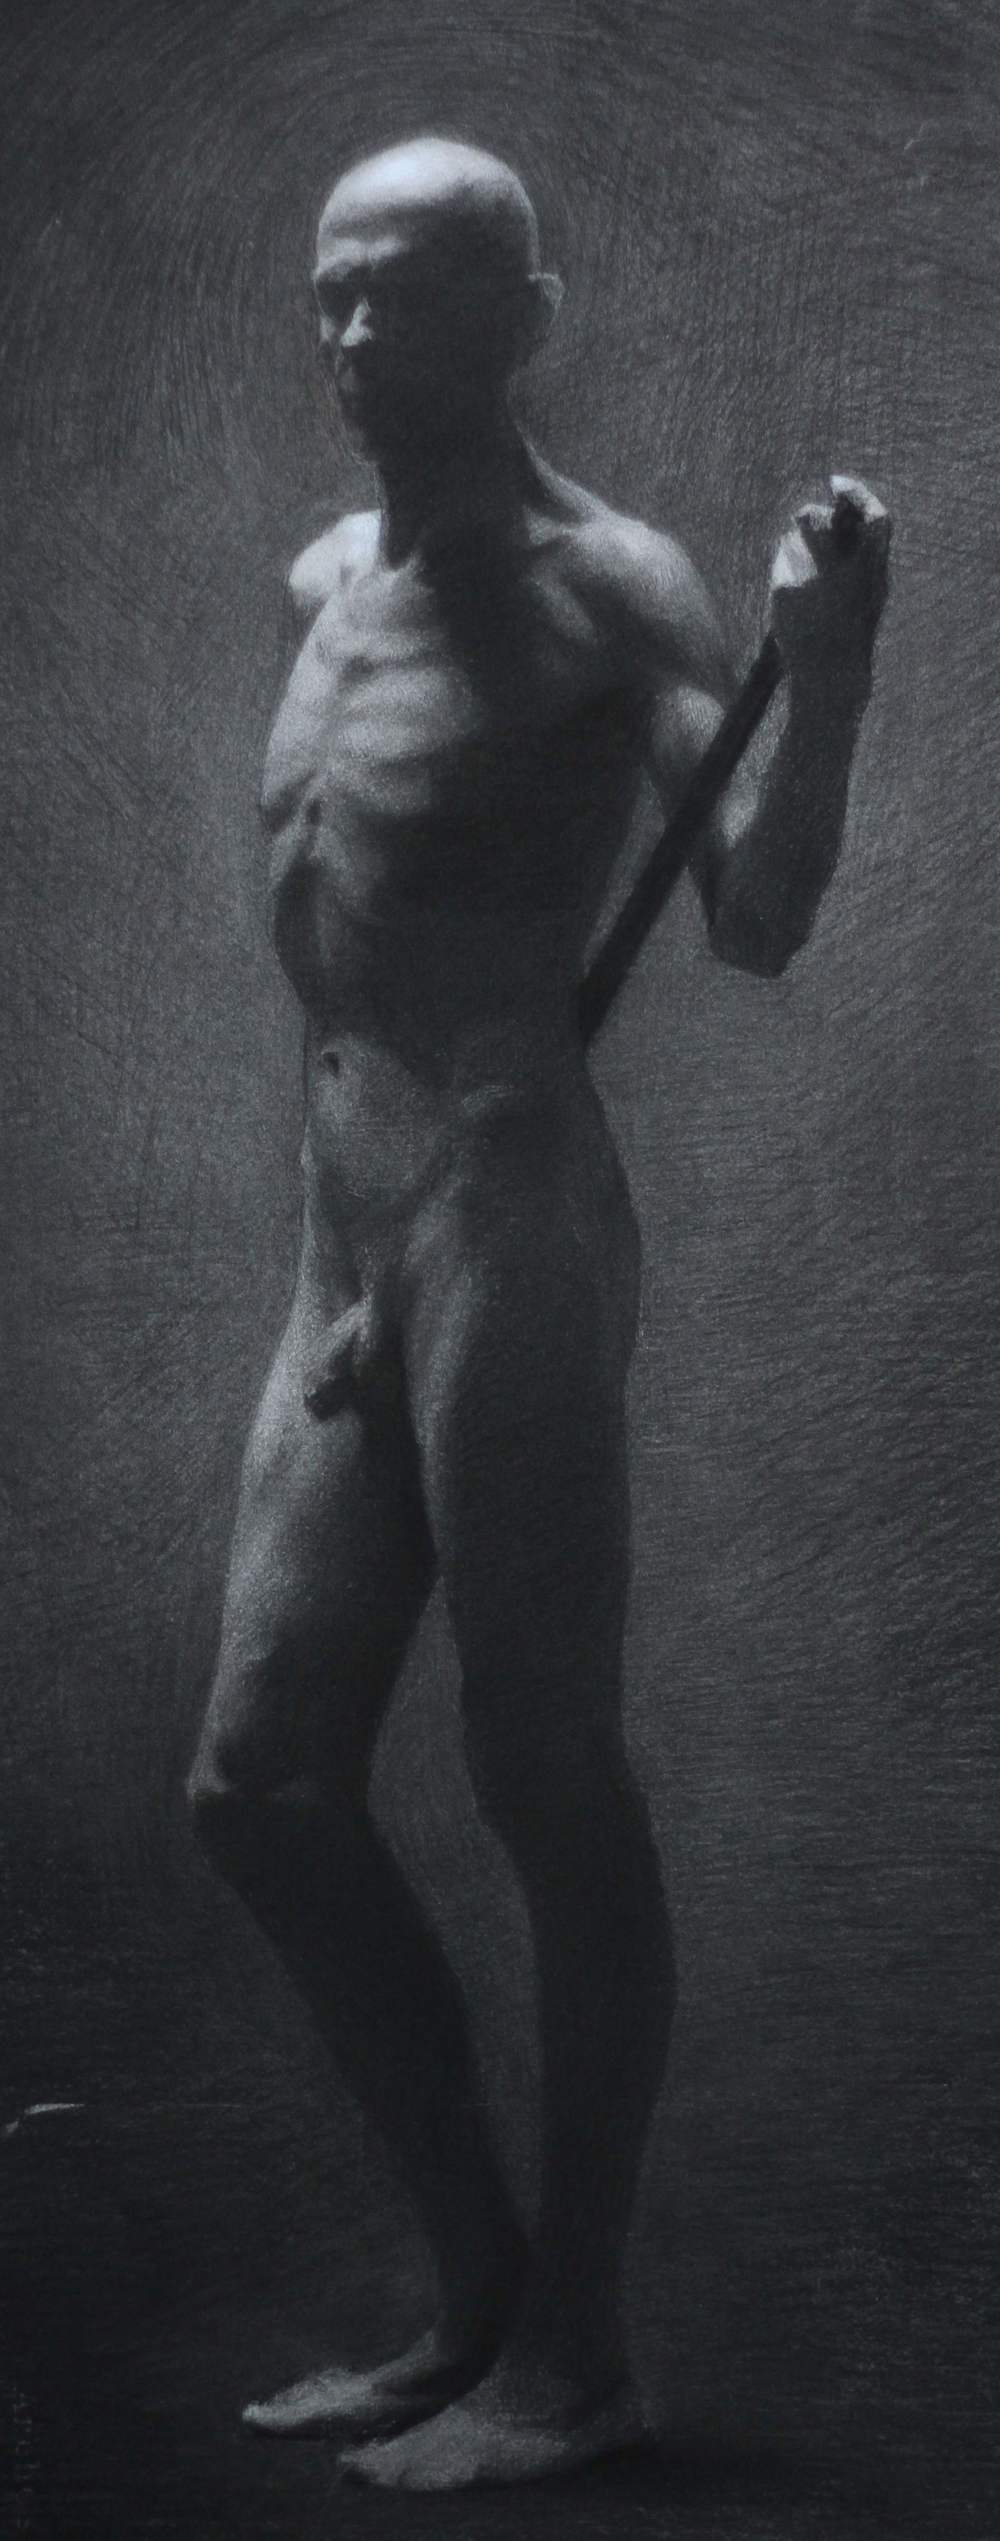 stefano, charcoal & white chalk on paper, 2013